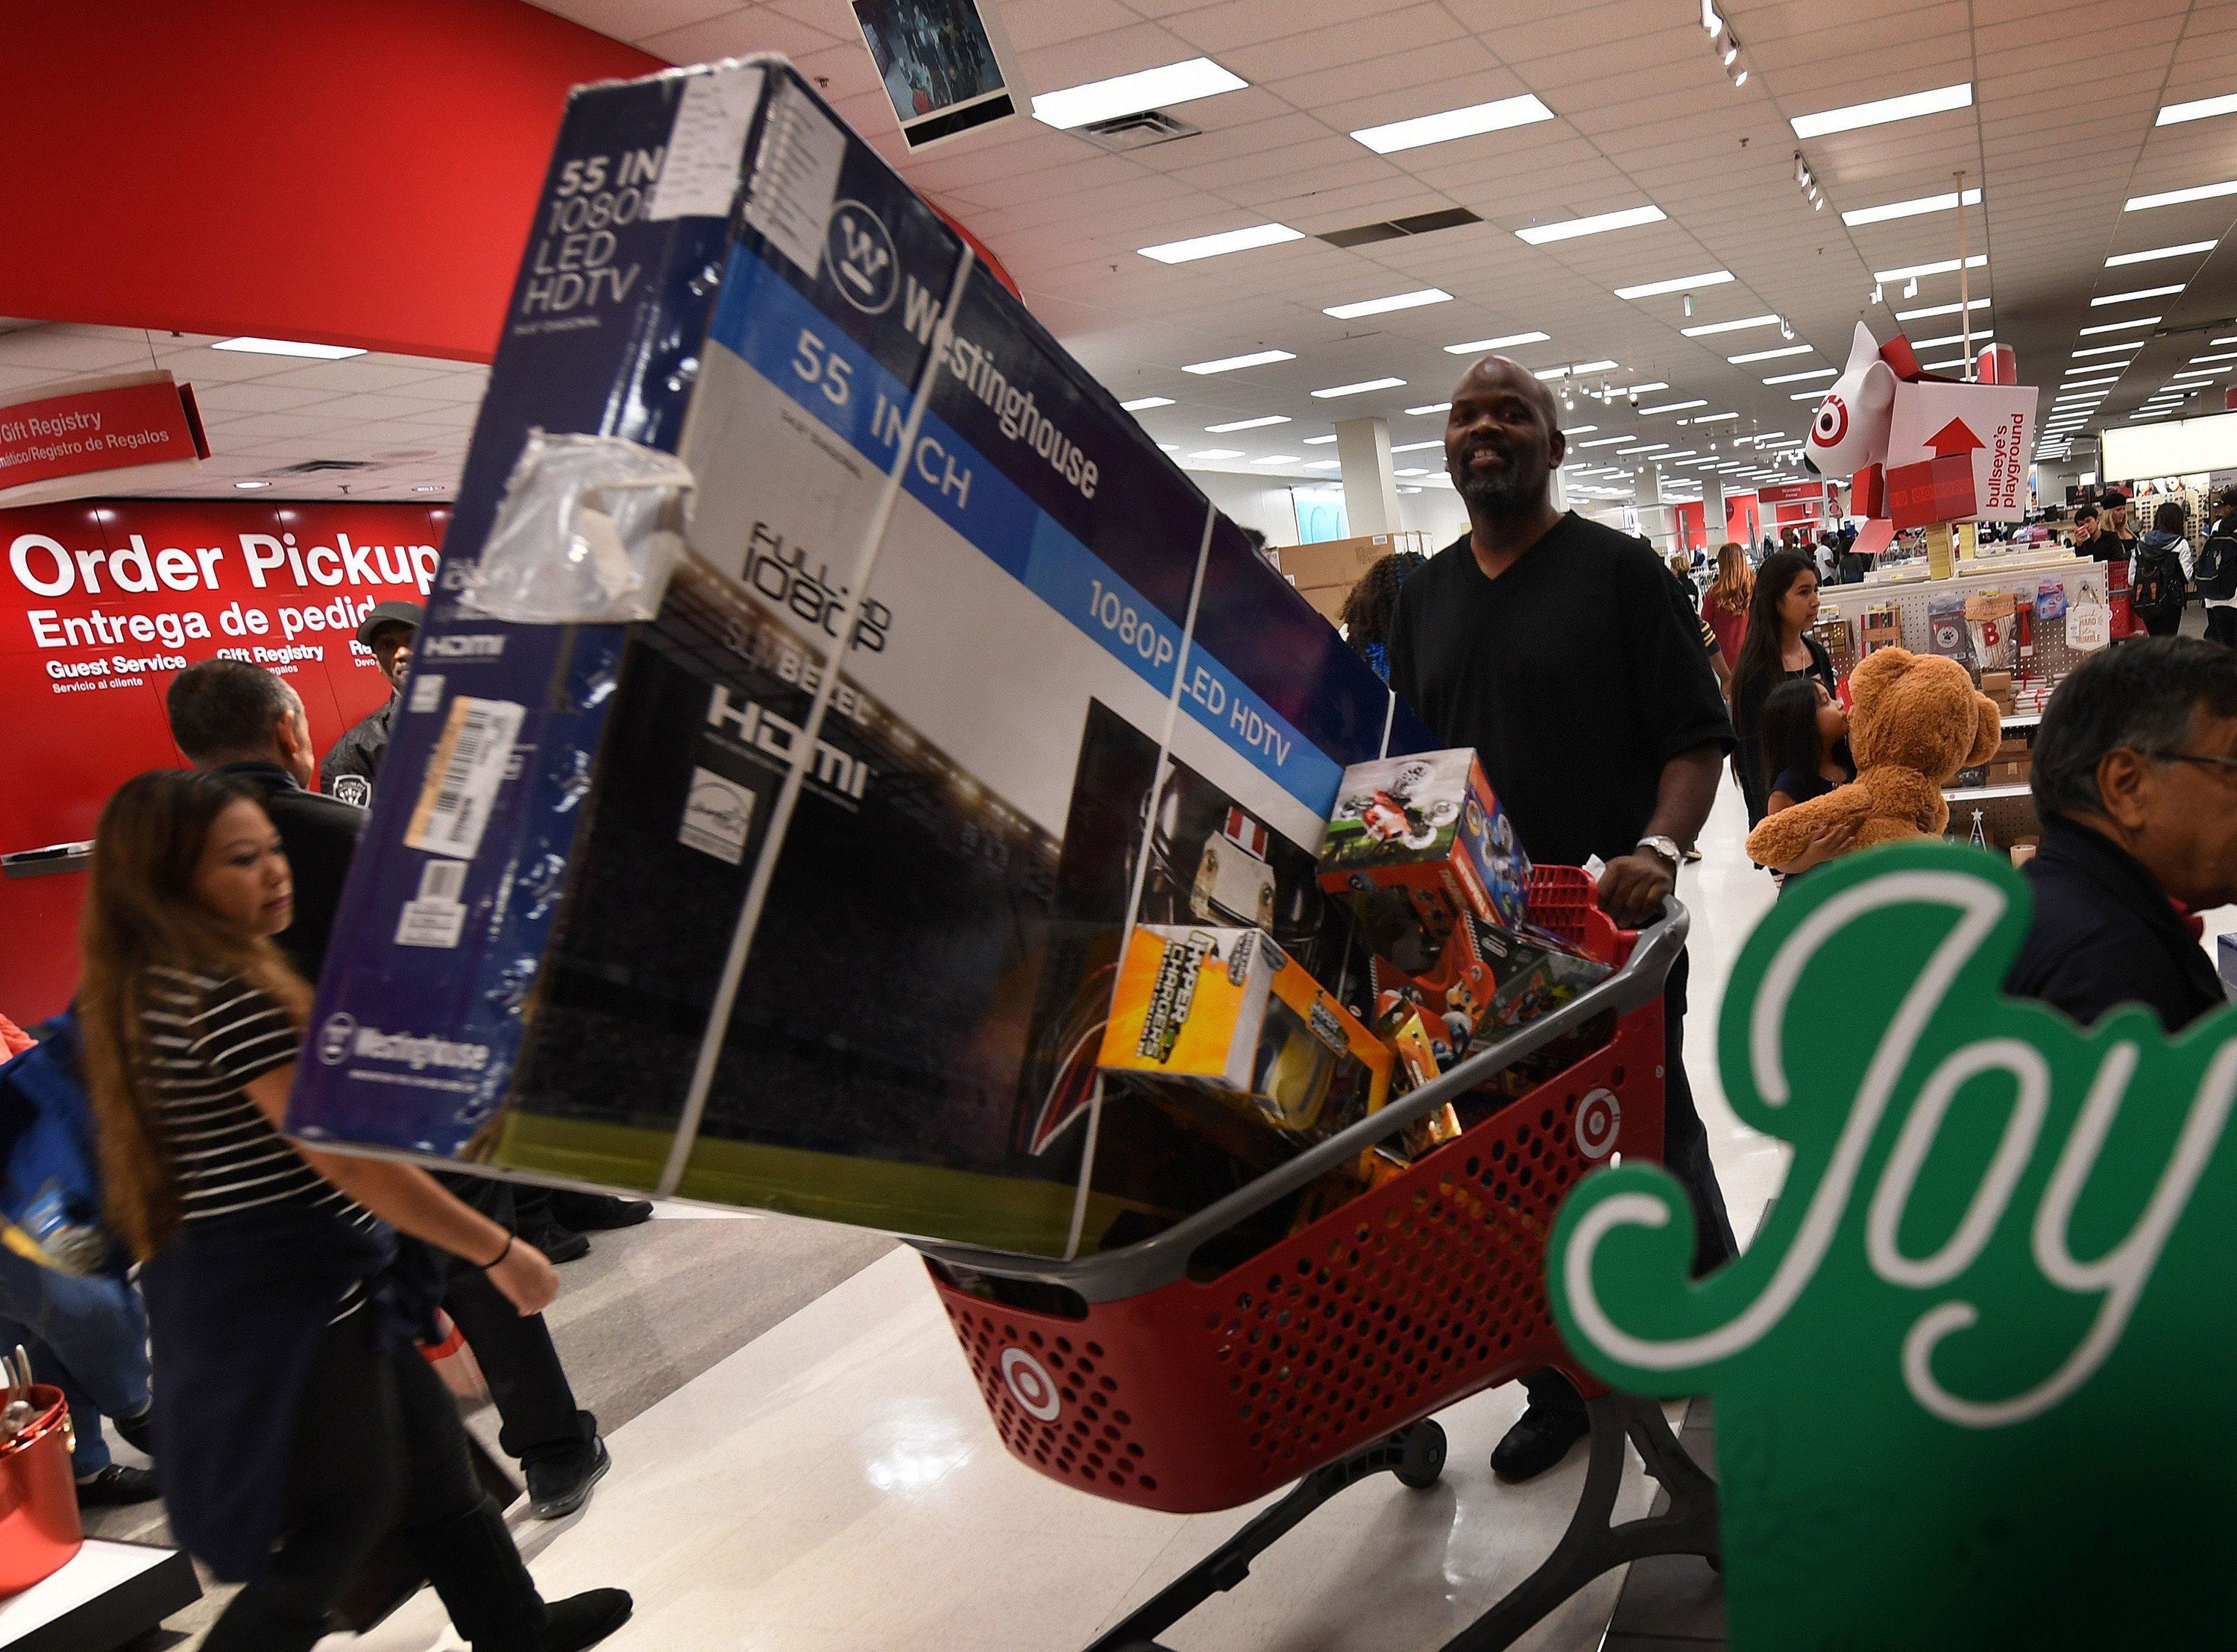 Retailers report a healthy spike in holiday sales